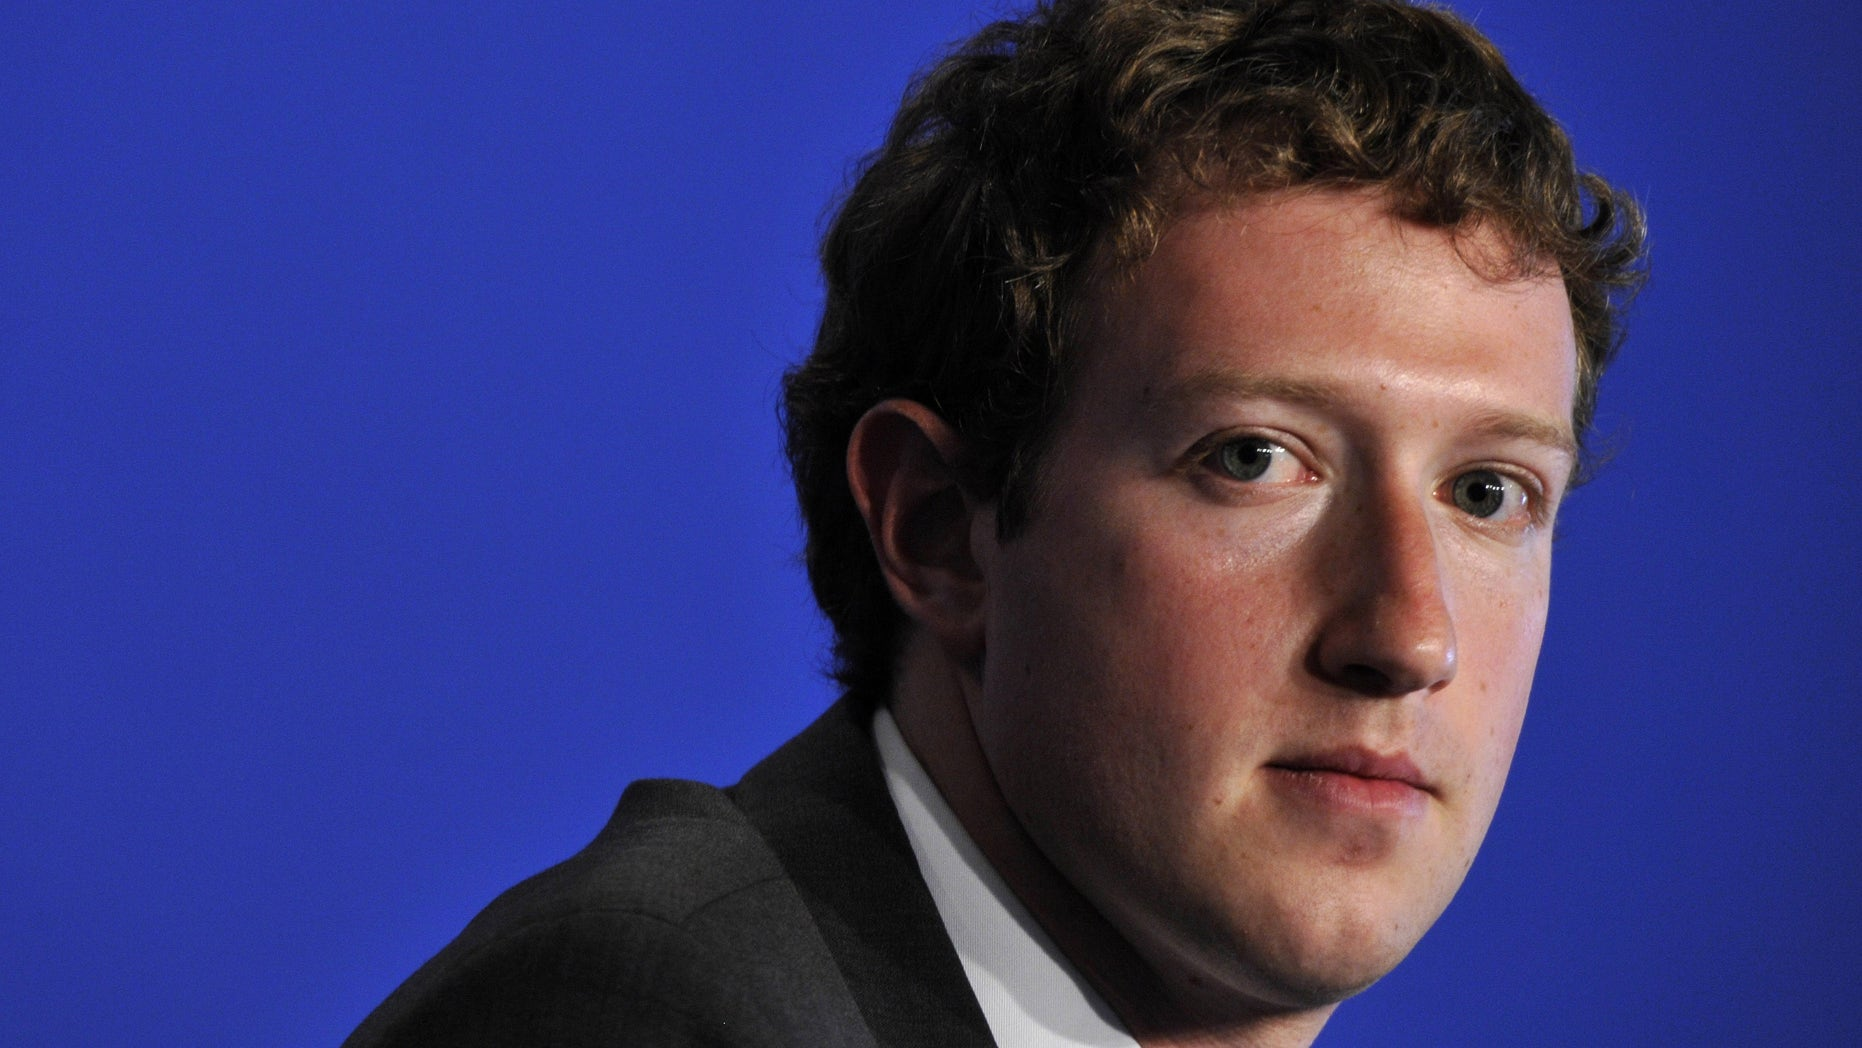 Mark Zuckerberg, founder of Facebook Inc.